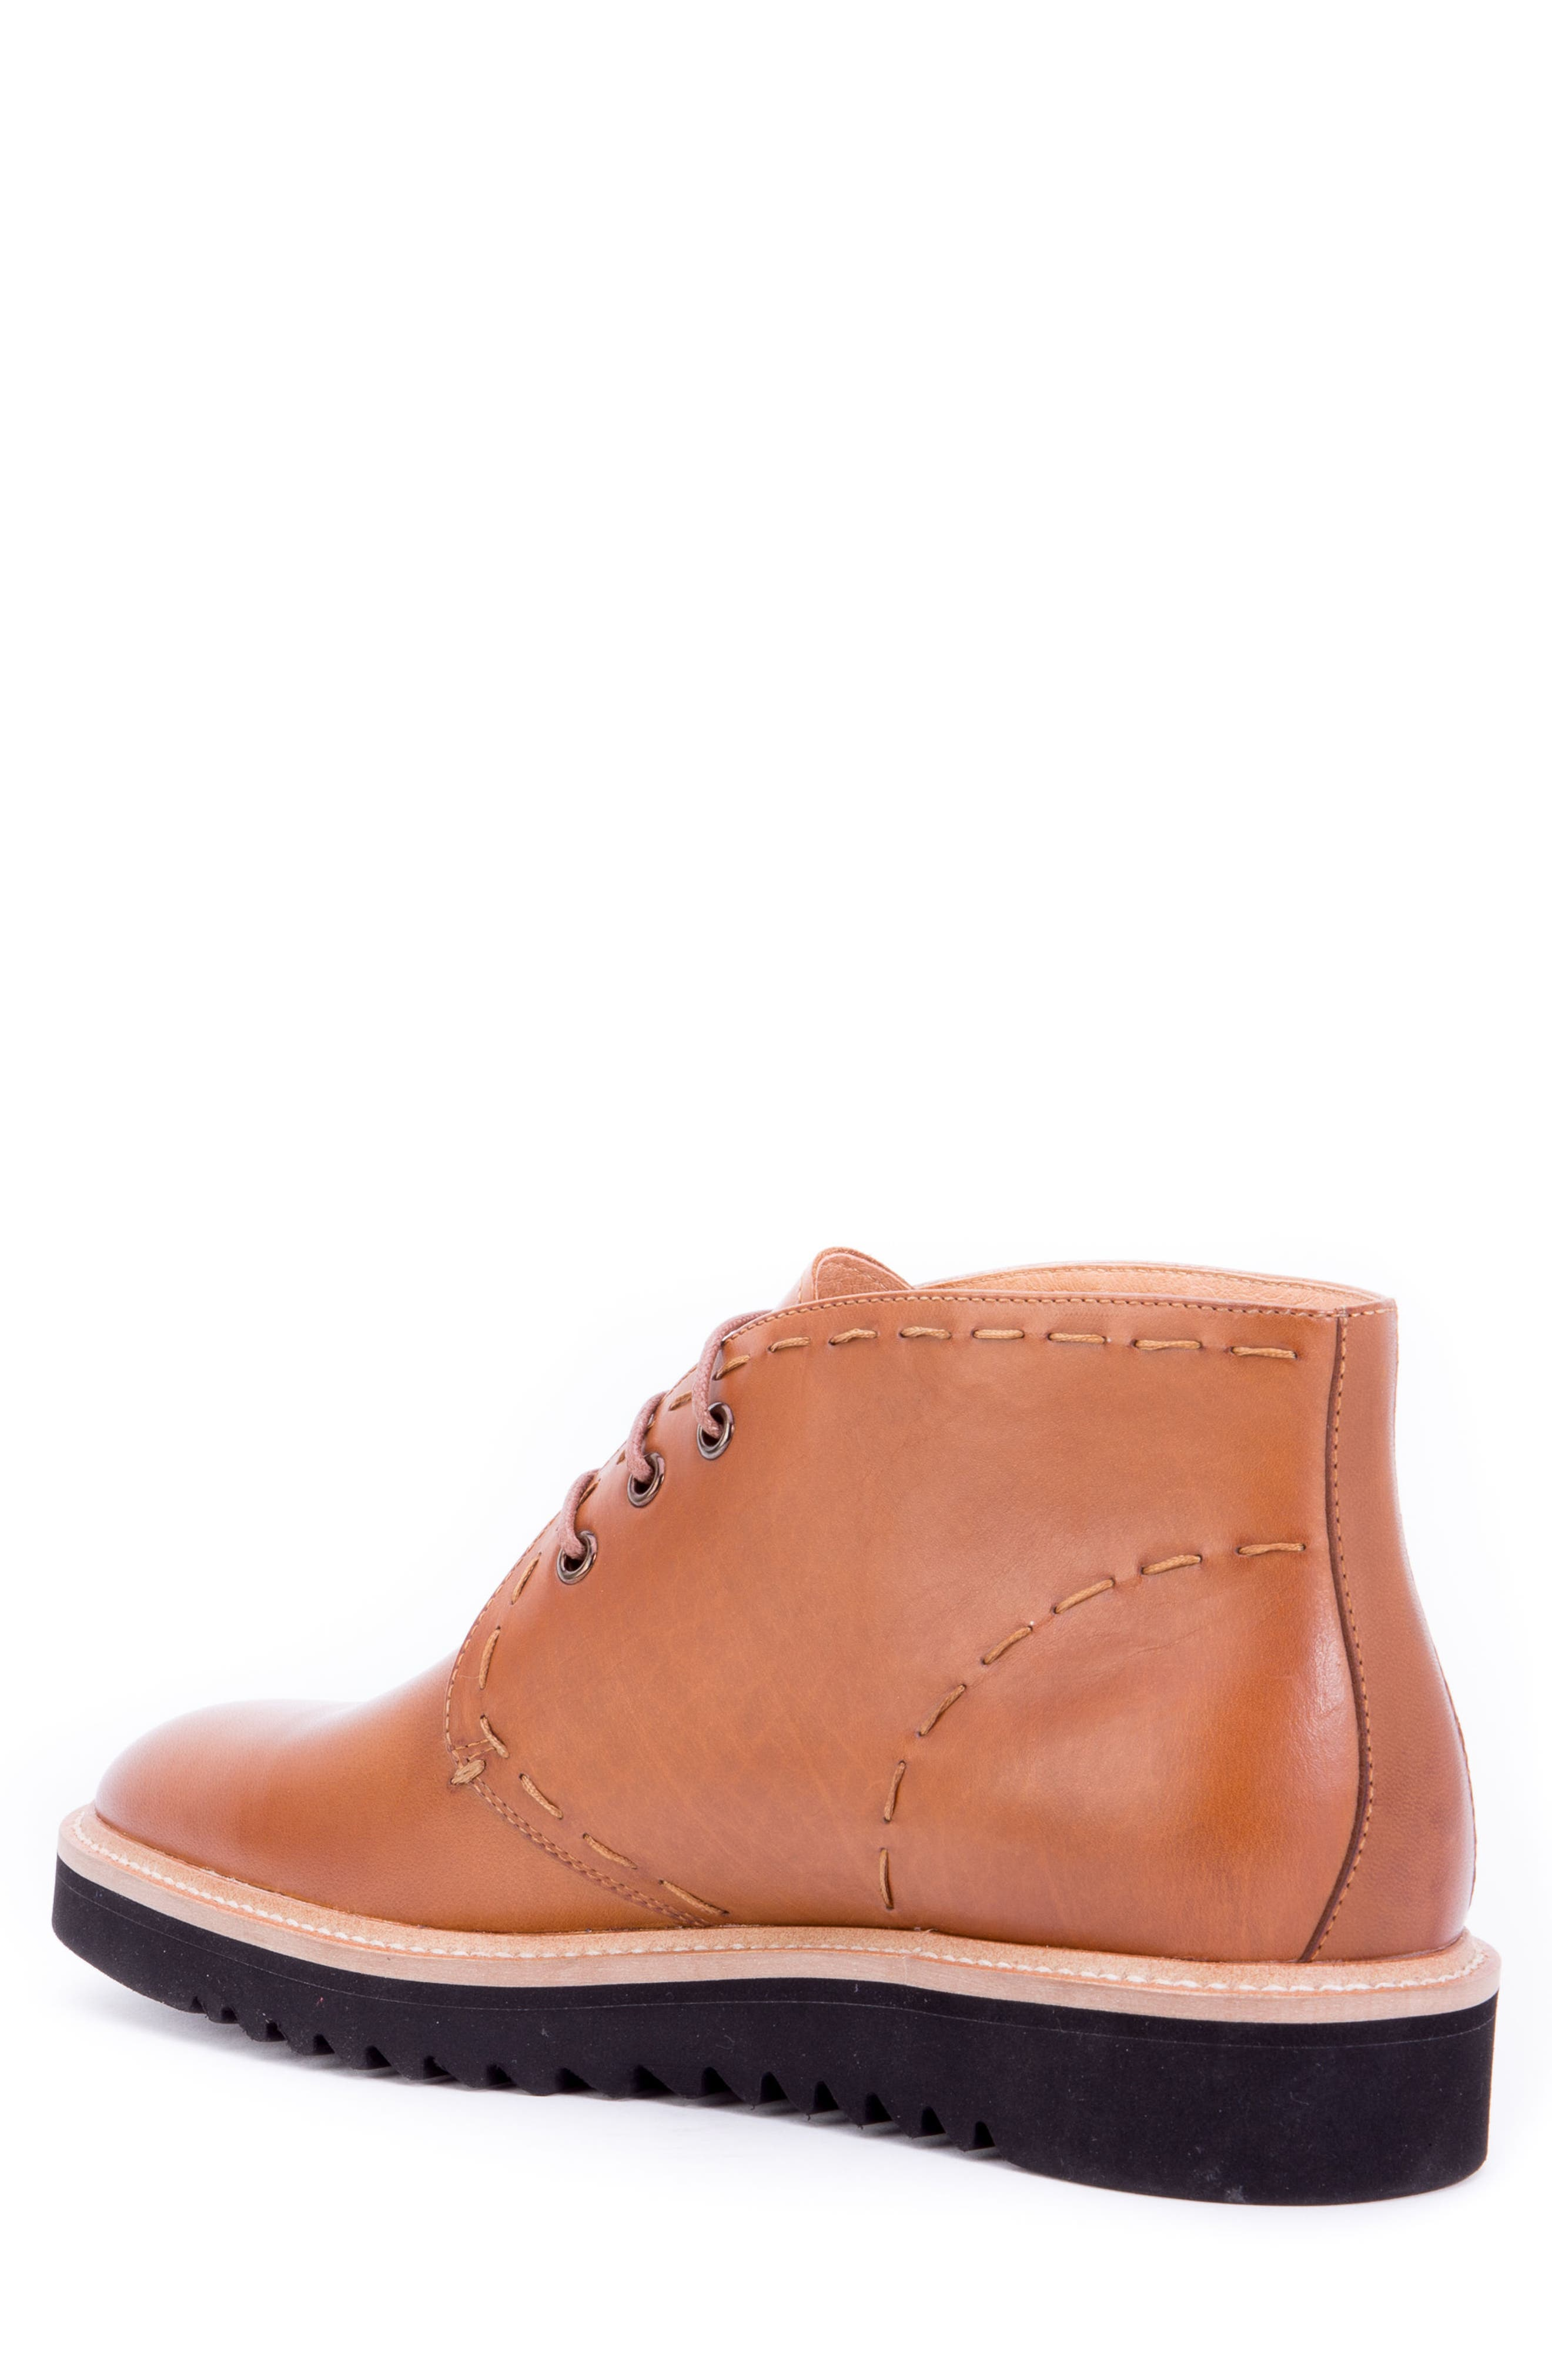 Lombardo Chukka Boot,                             Alternate thumbnail 2, color,                             COGNAC LEATHER